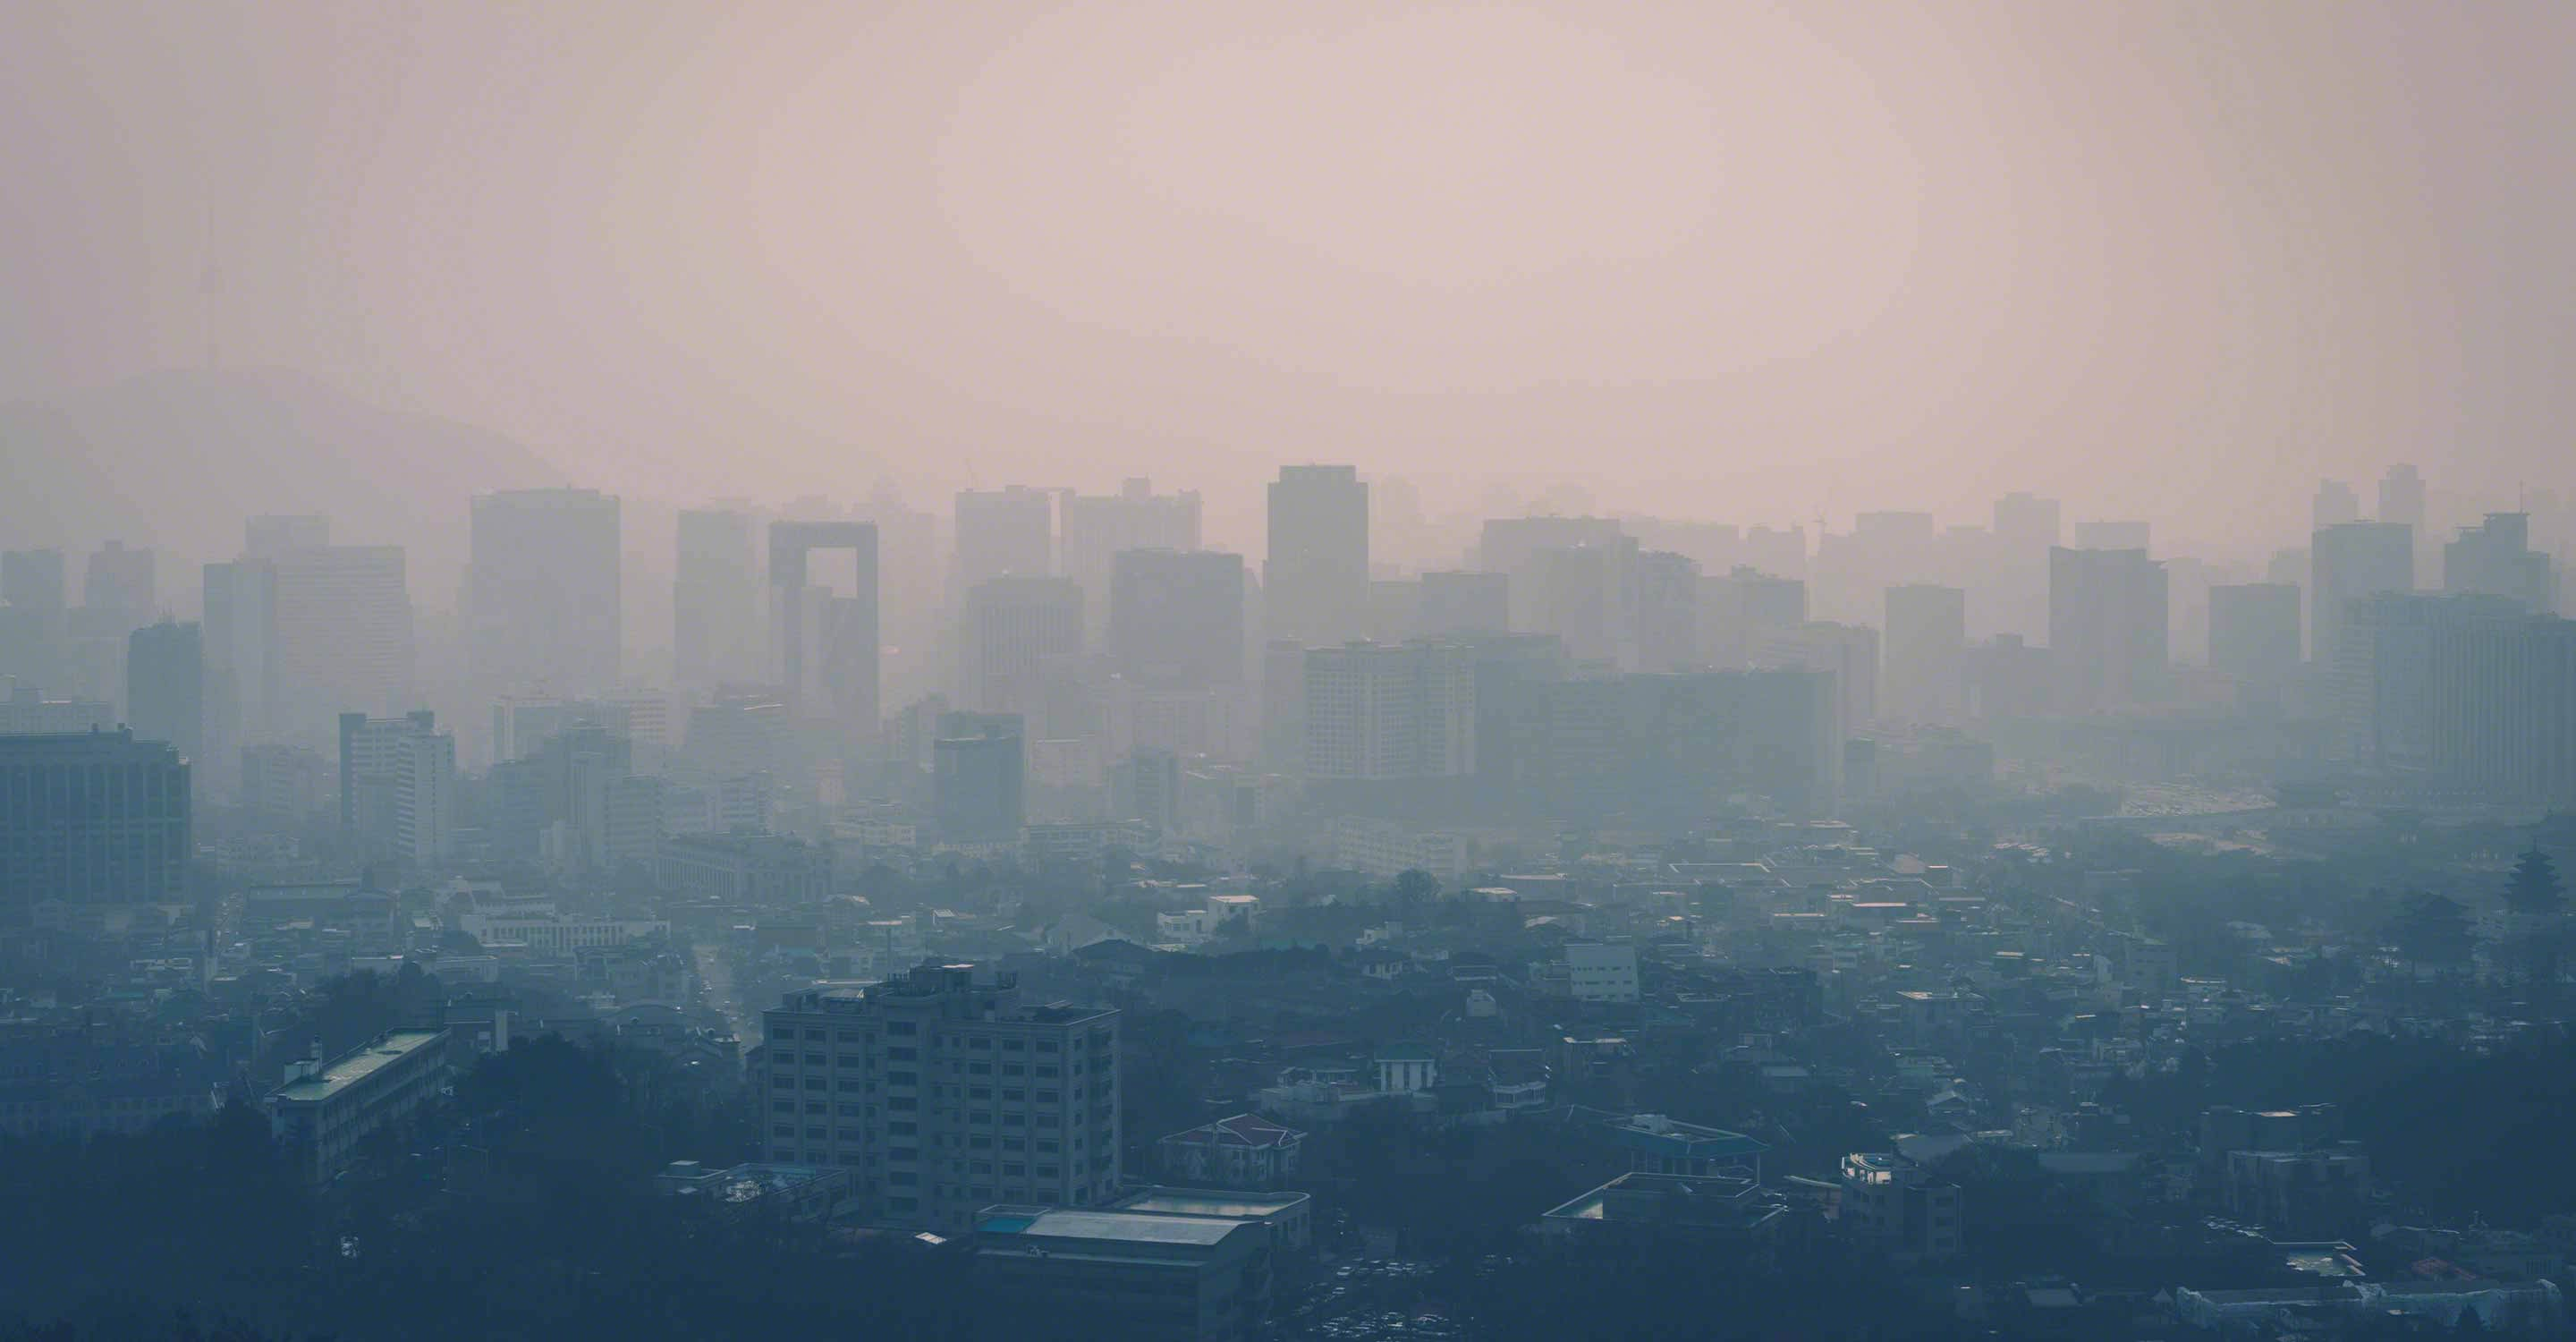 IQAir and Greenpeace report 2020 air pollution deaths